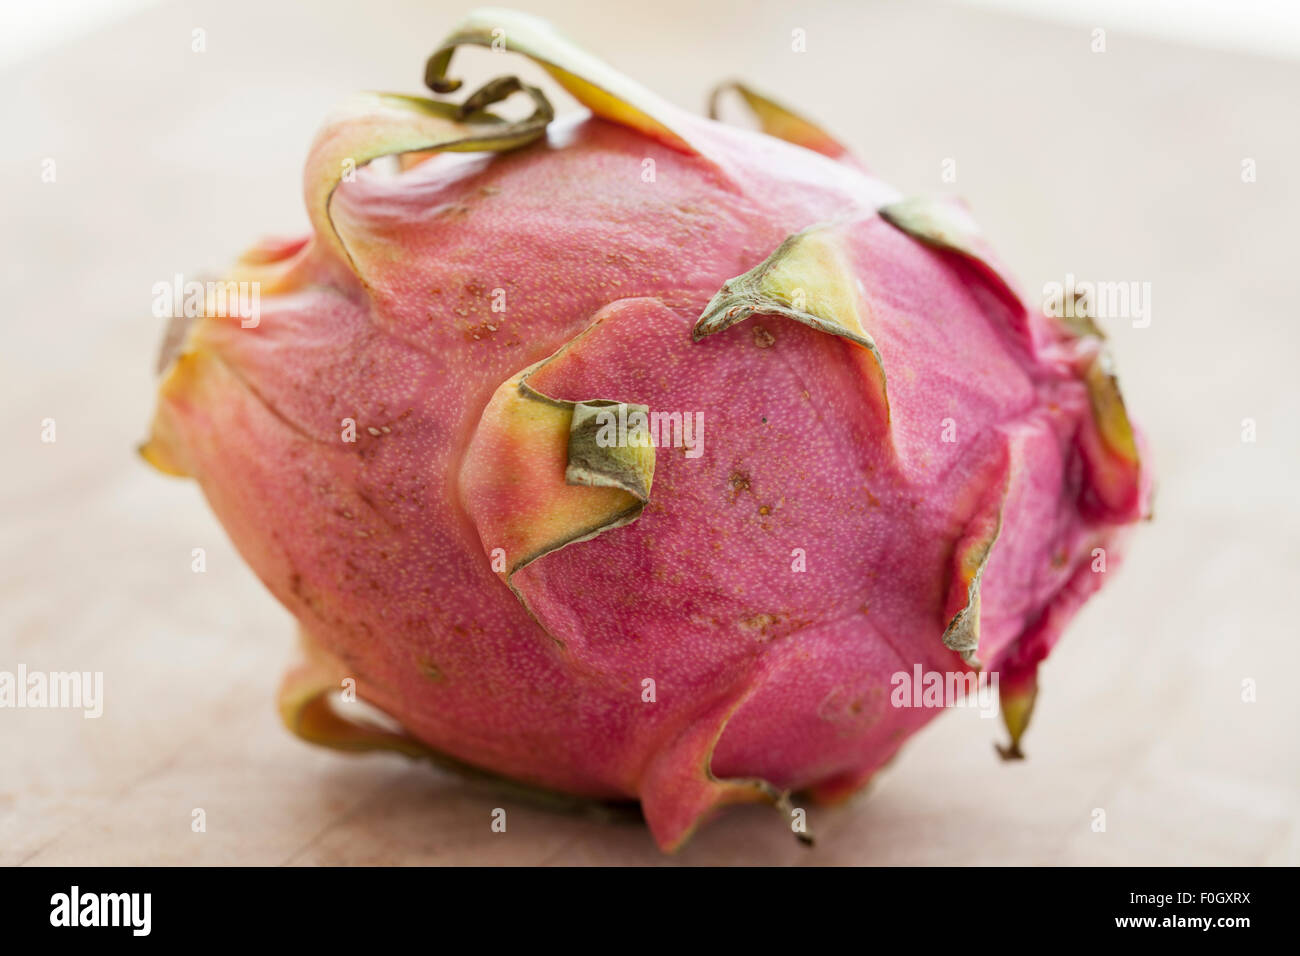 A dragon fruit or pitaya on a wooden surface photographed with window light. - Stock Image